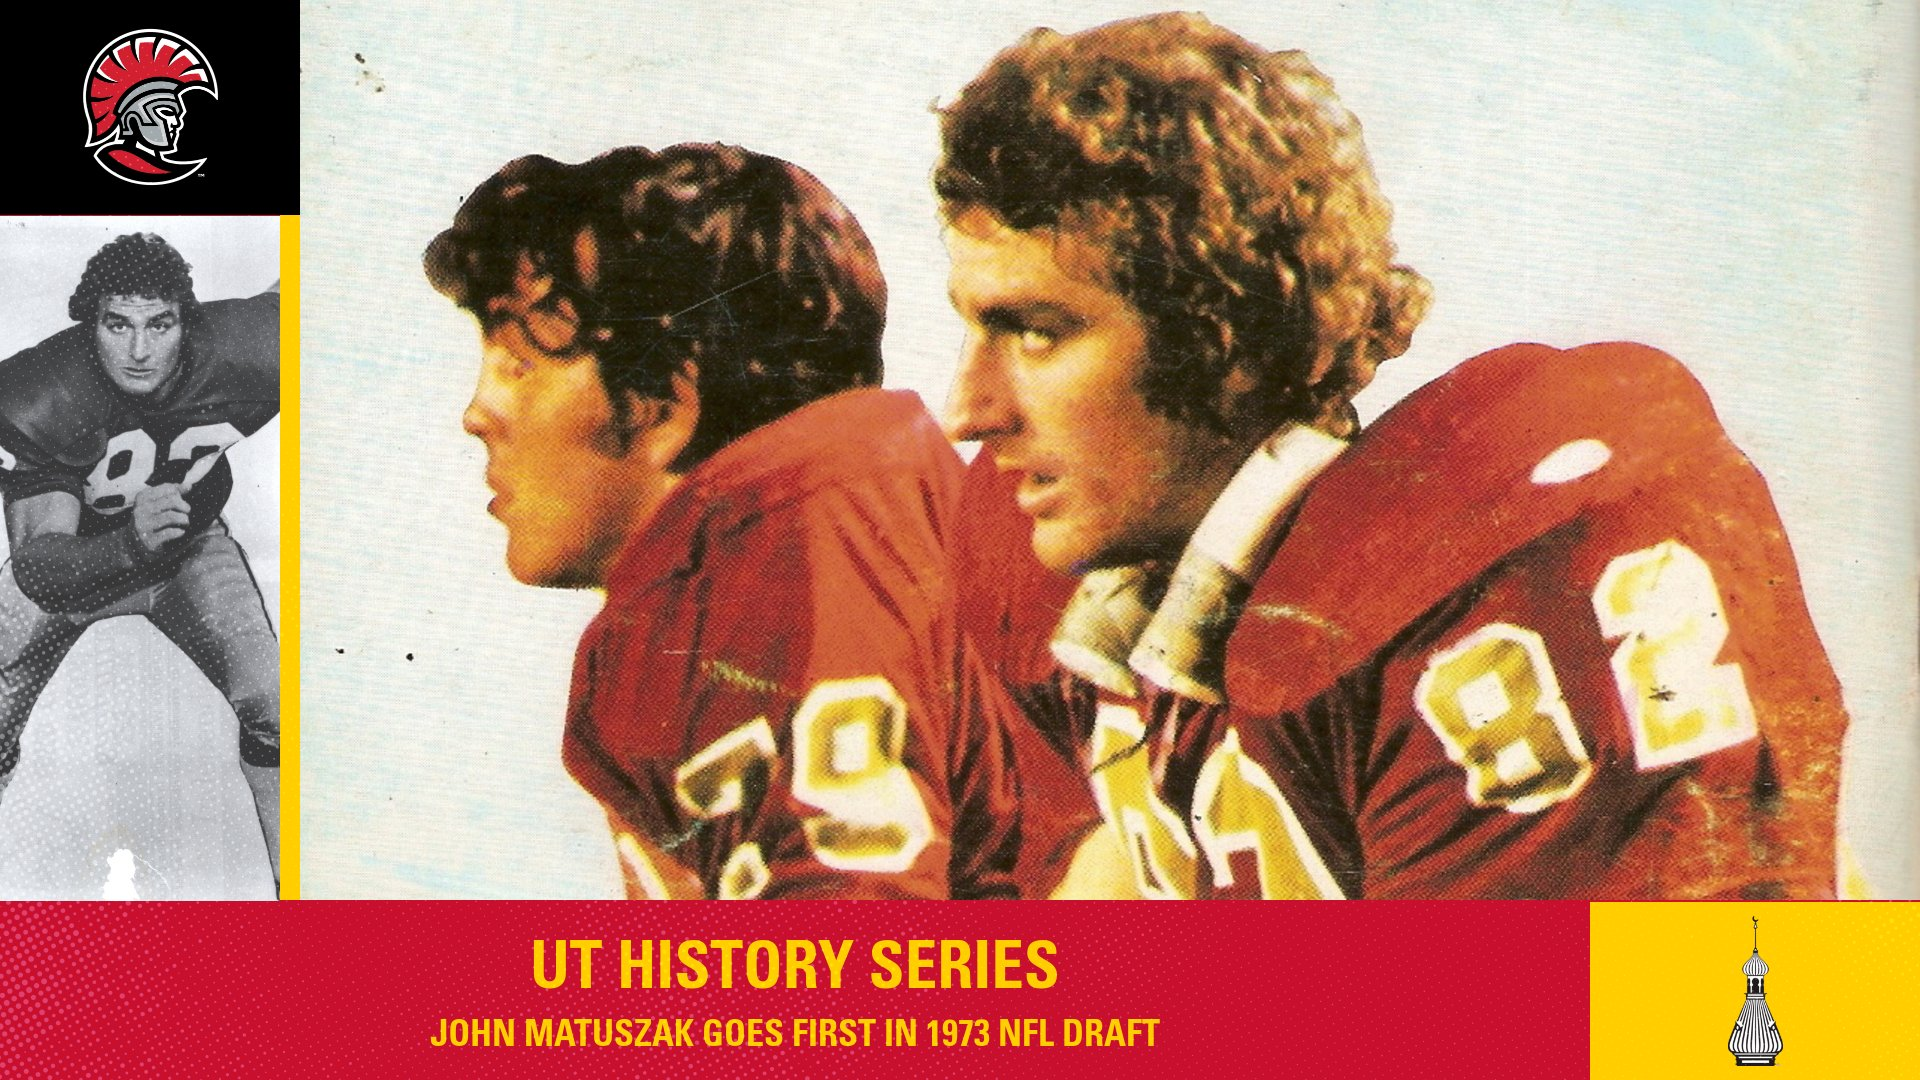 UT History Series: Tampa and Number One Overall NFL Draft Pick